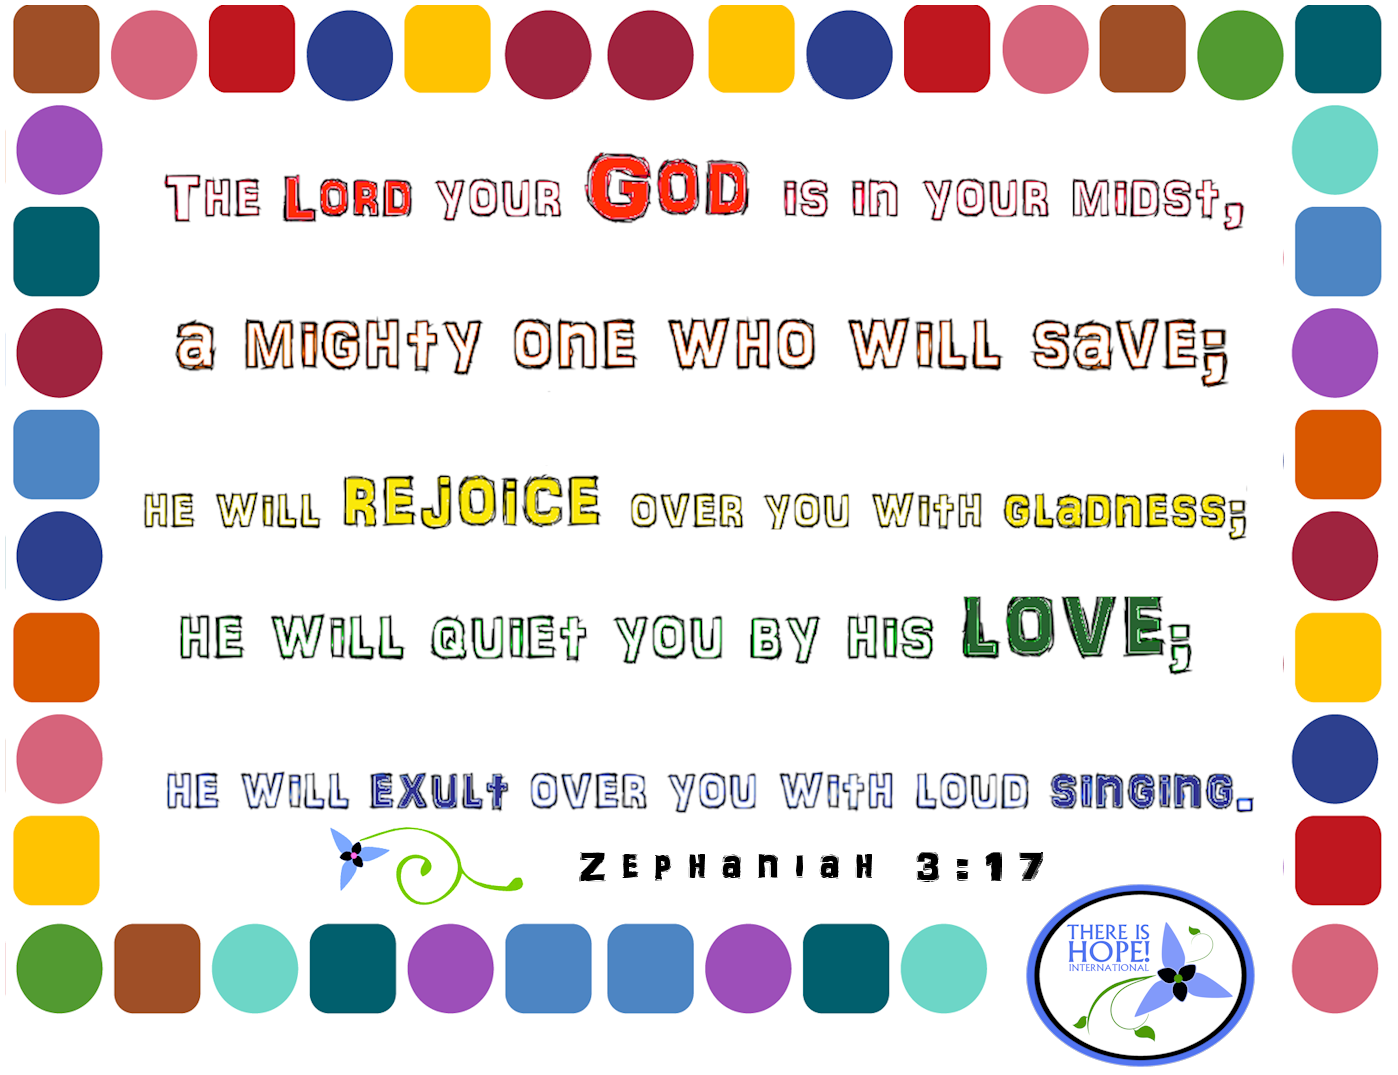 Zephaniah 3:17 There is hope. http://www.thereishopeint.com/